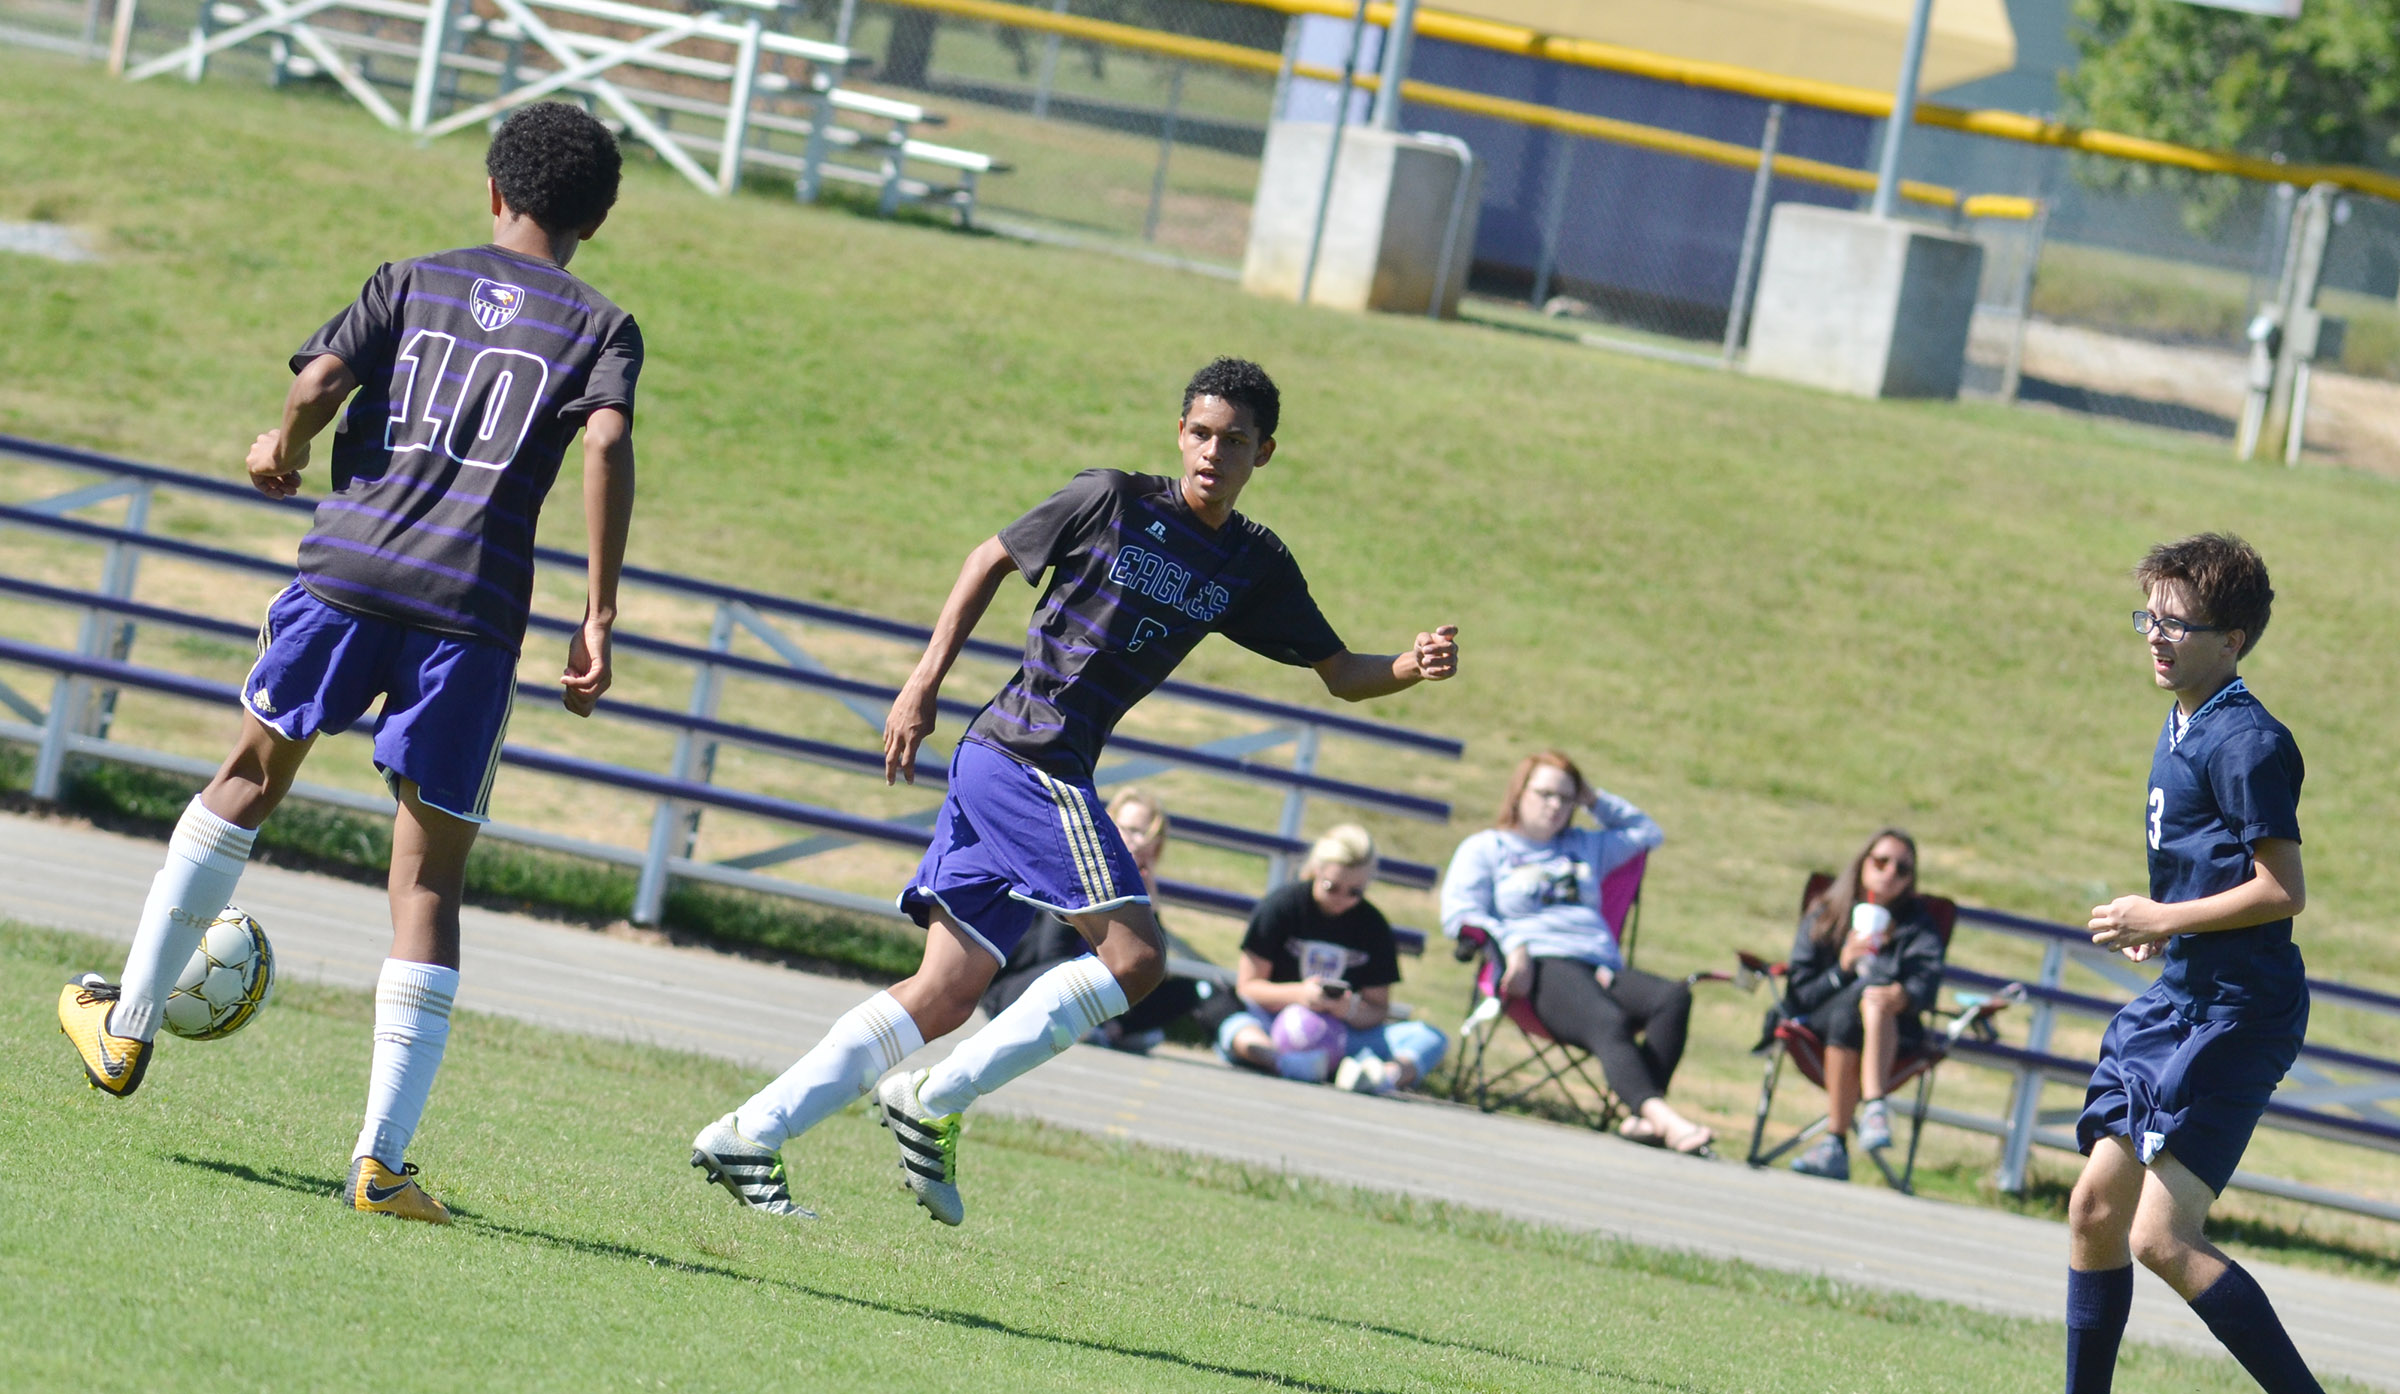 CHS sophomore David Silva, at left, passes the ball to classmate Mikael Vaught.